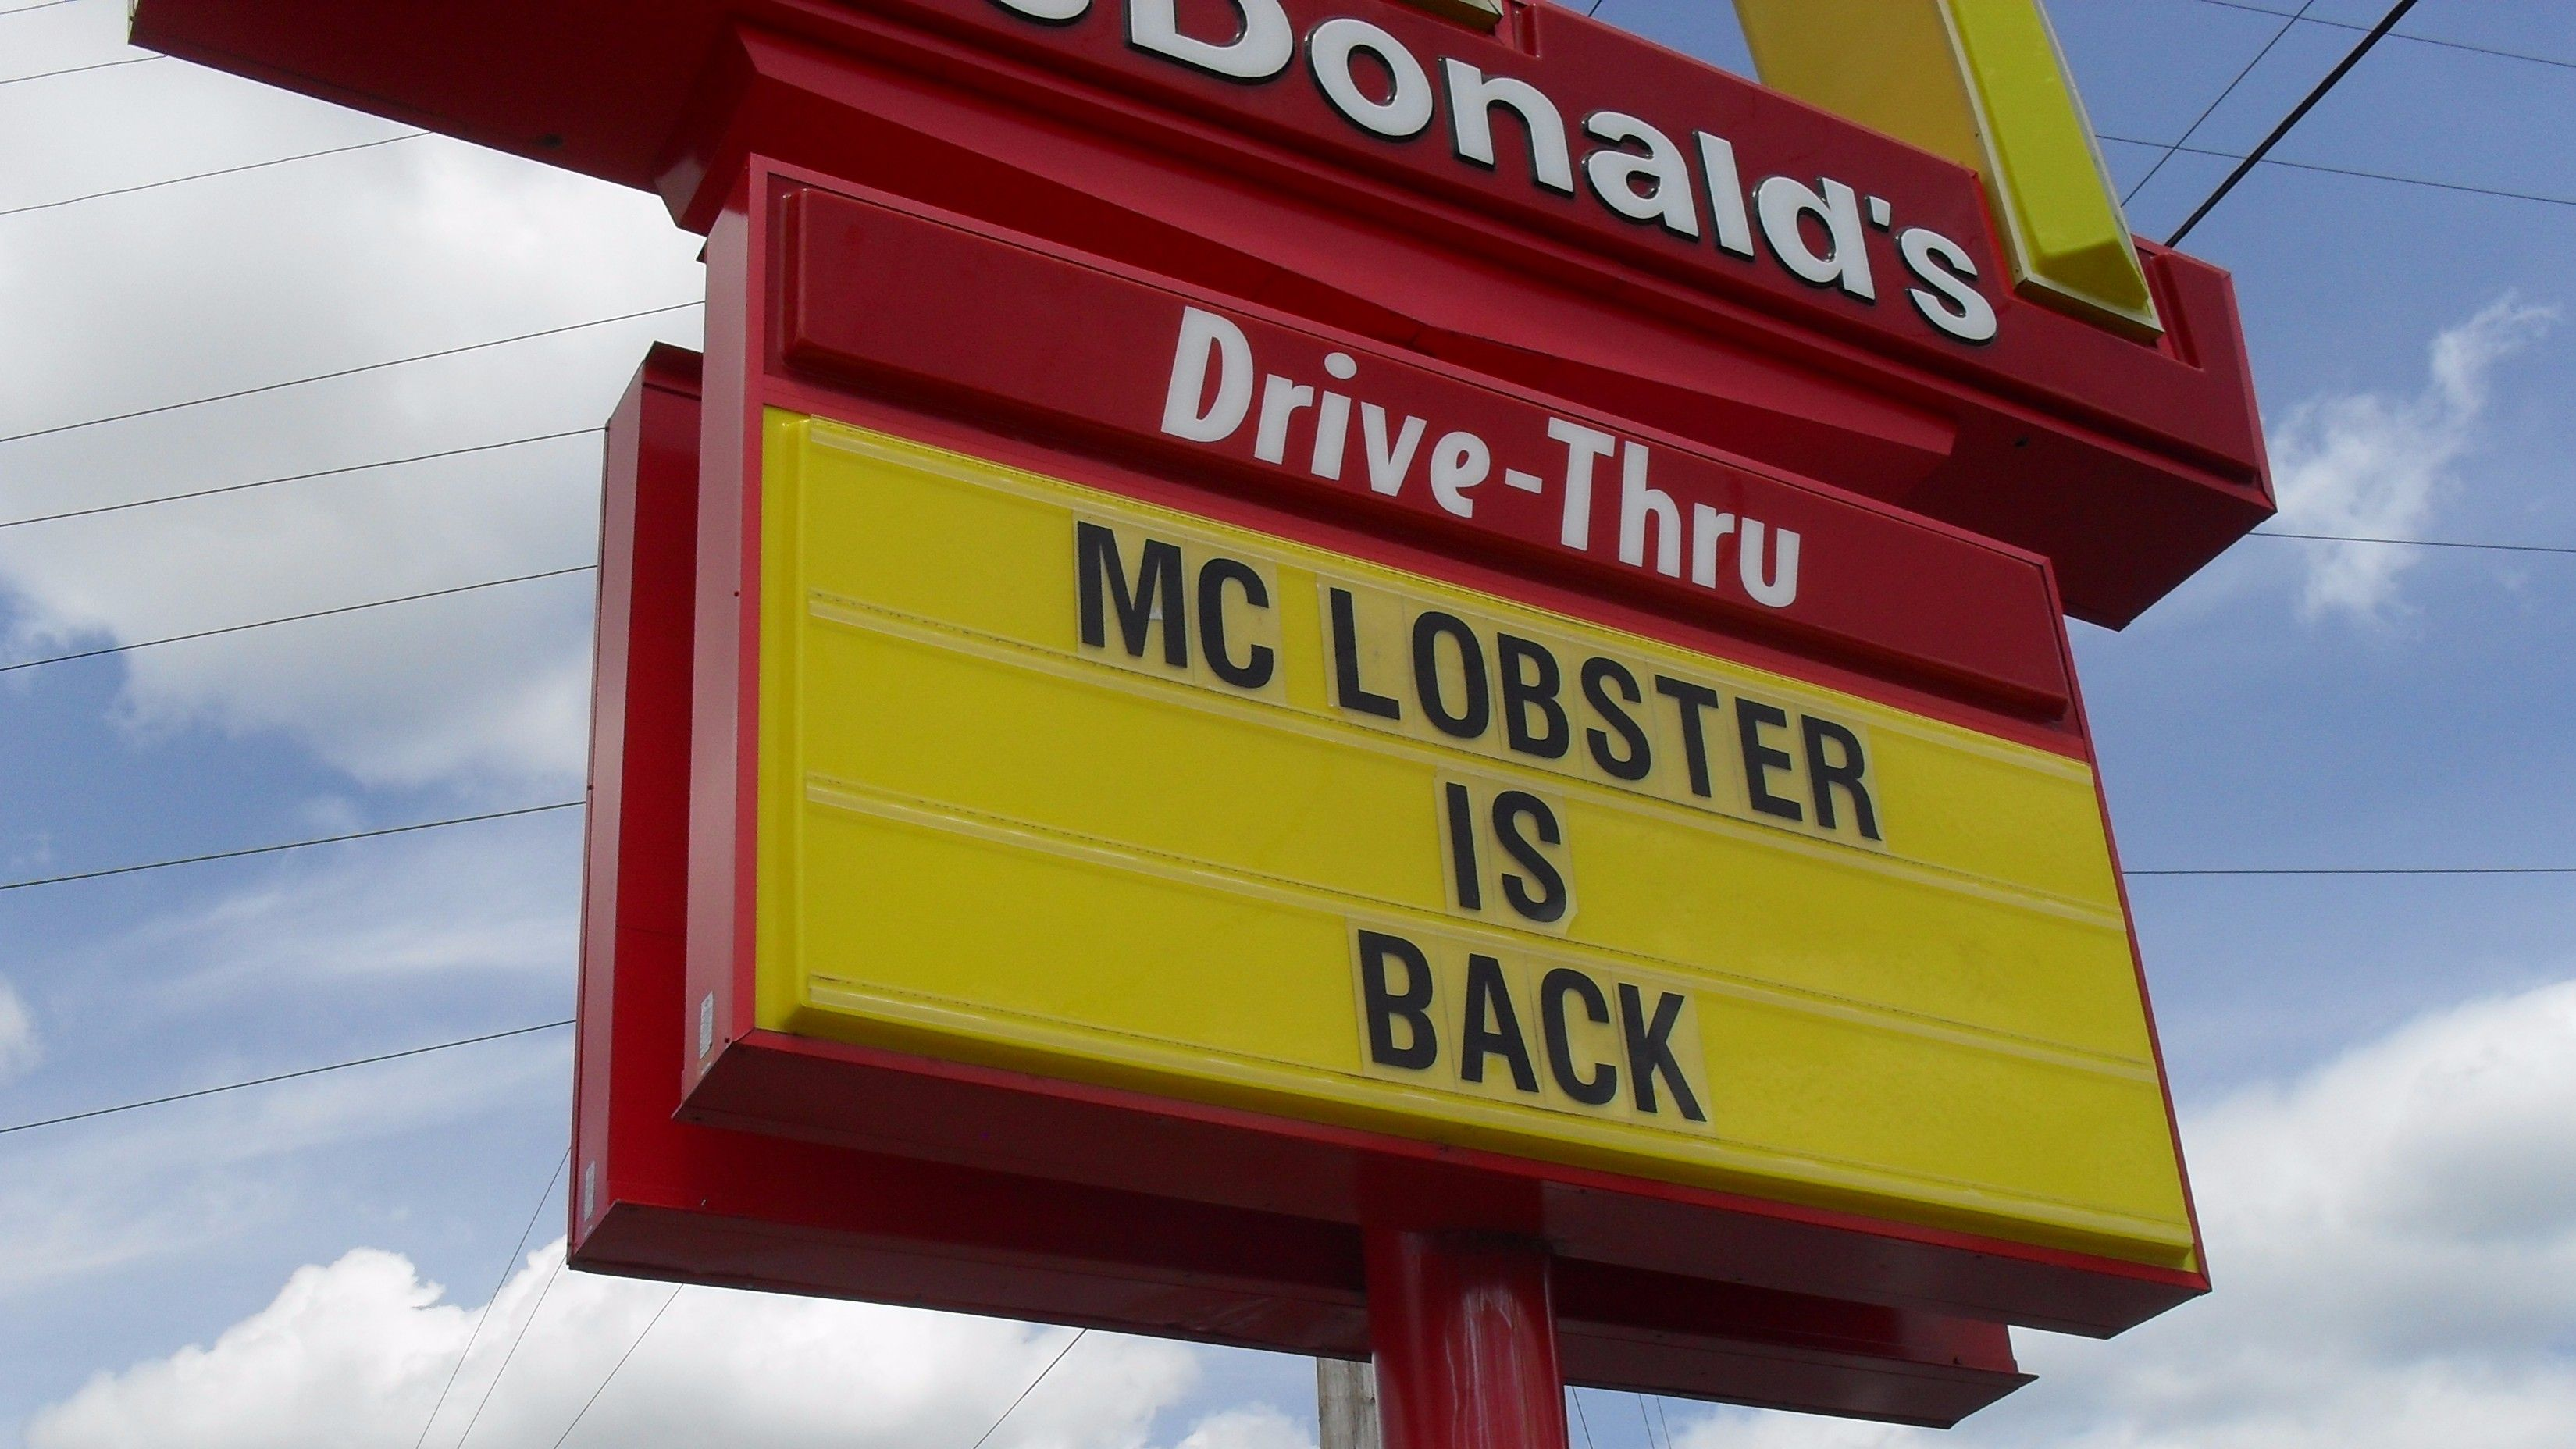 5. Some McDonald's Food Ideas Were Disasters